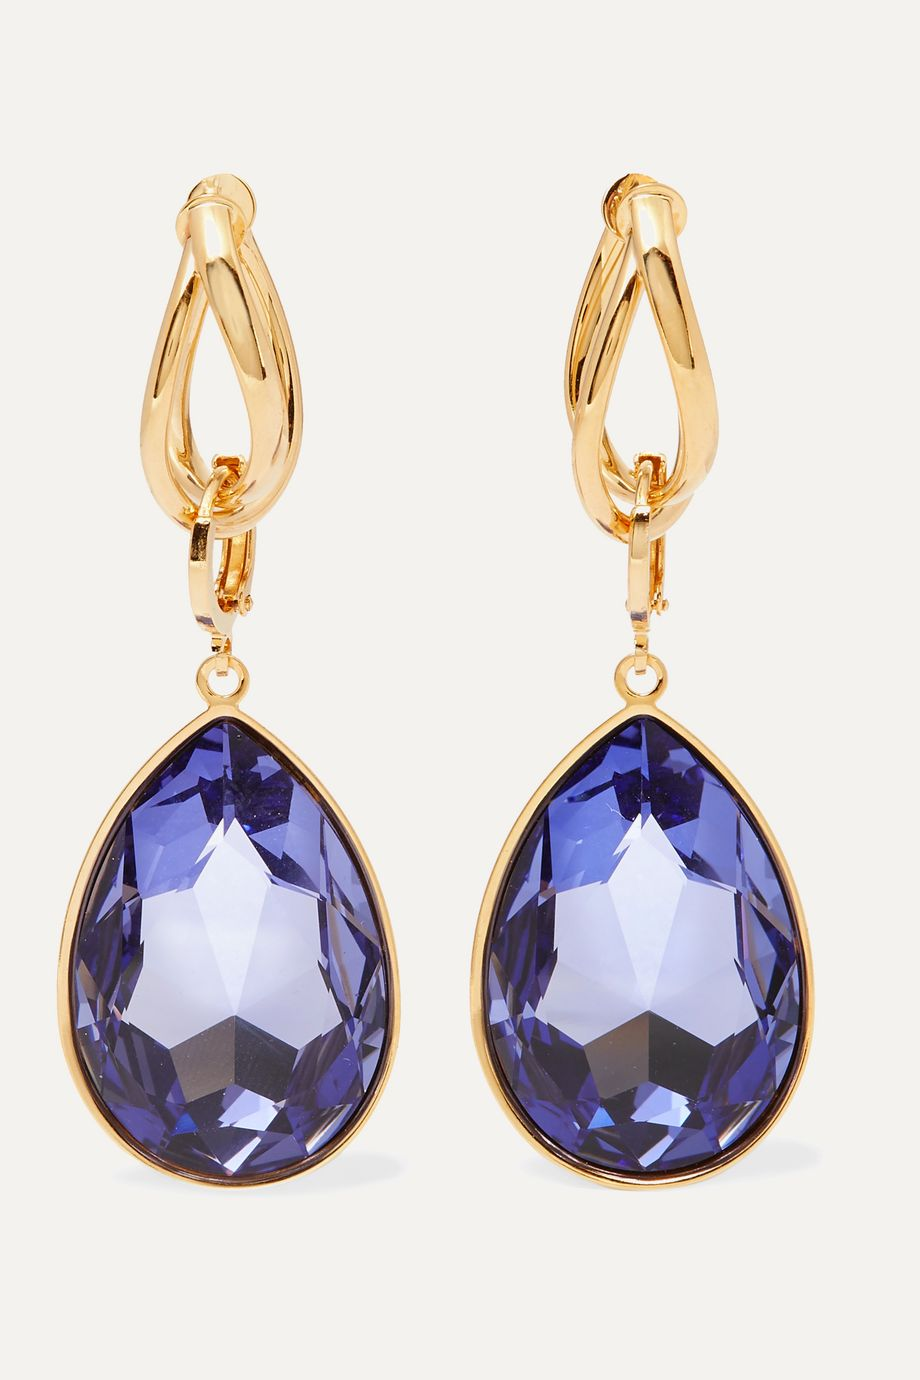 Mounser Night Sky gold-plated crystal earrings